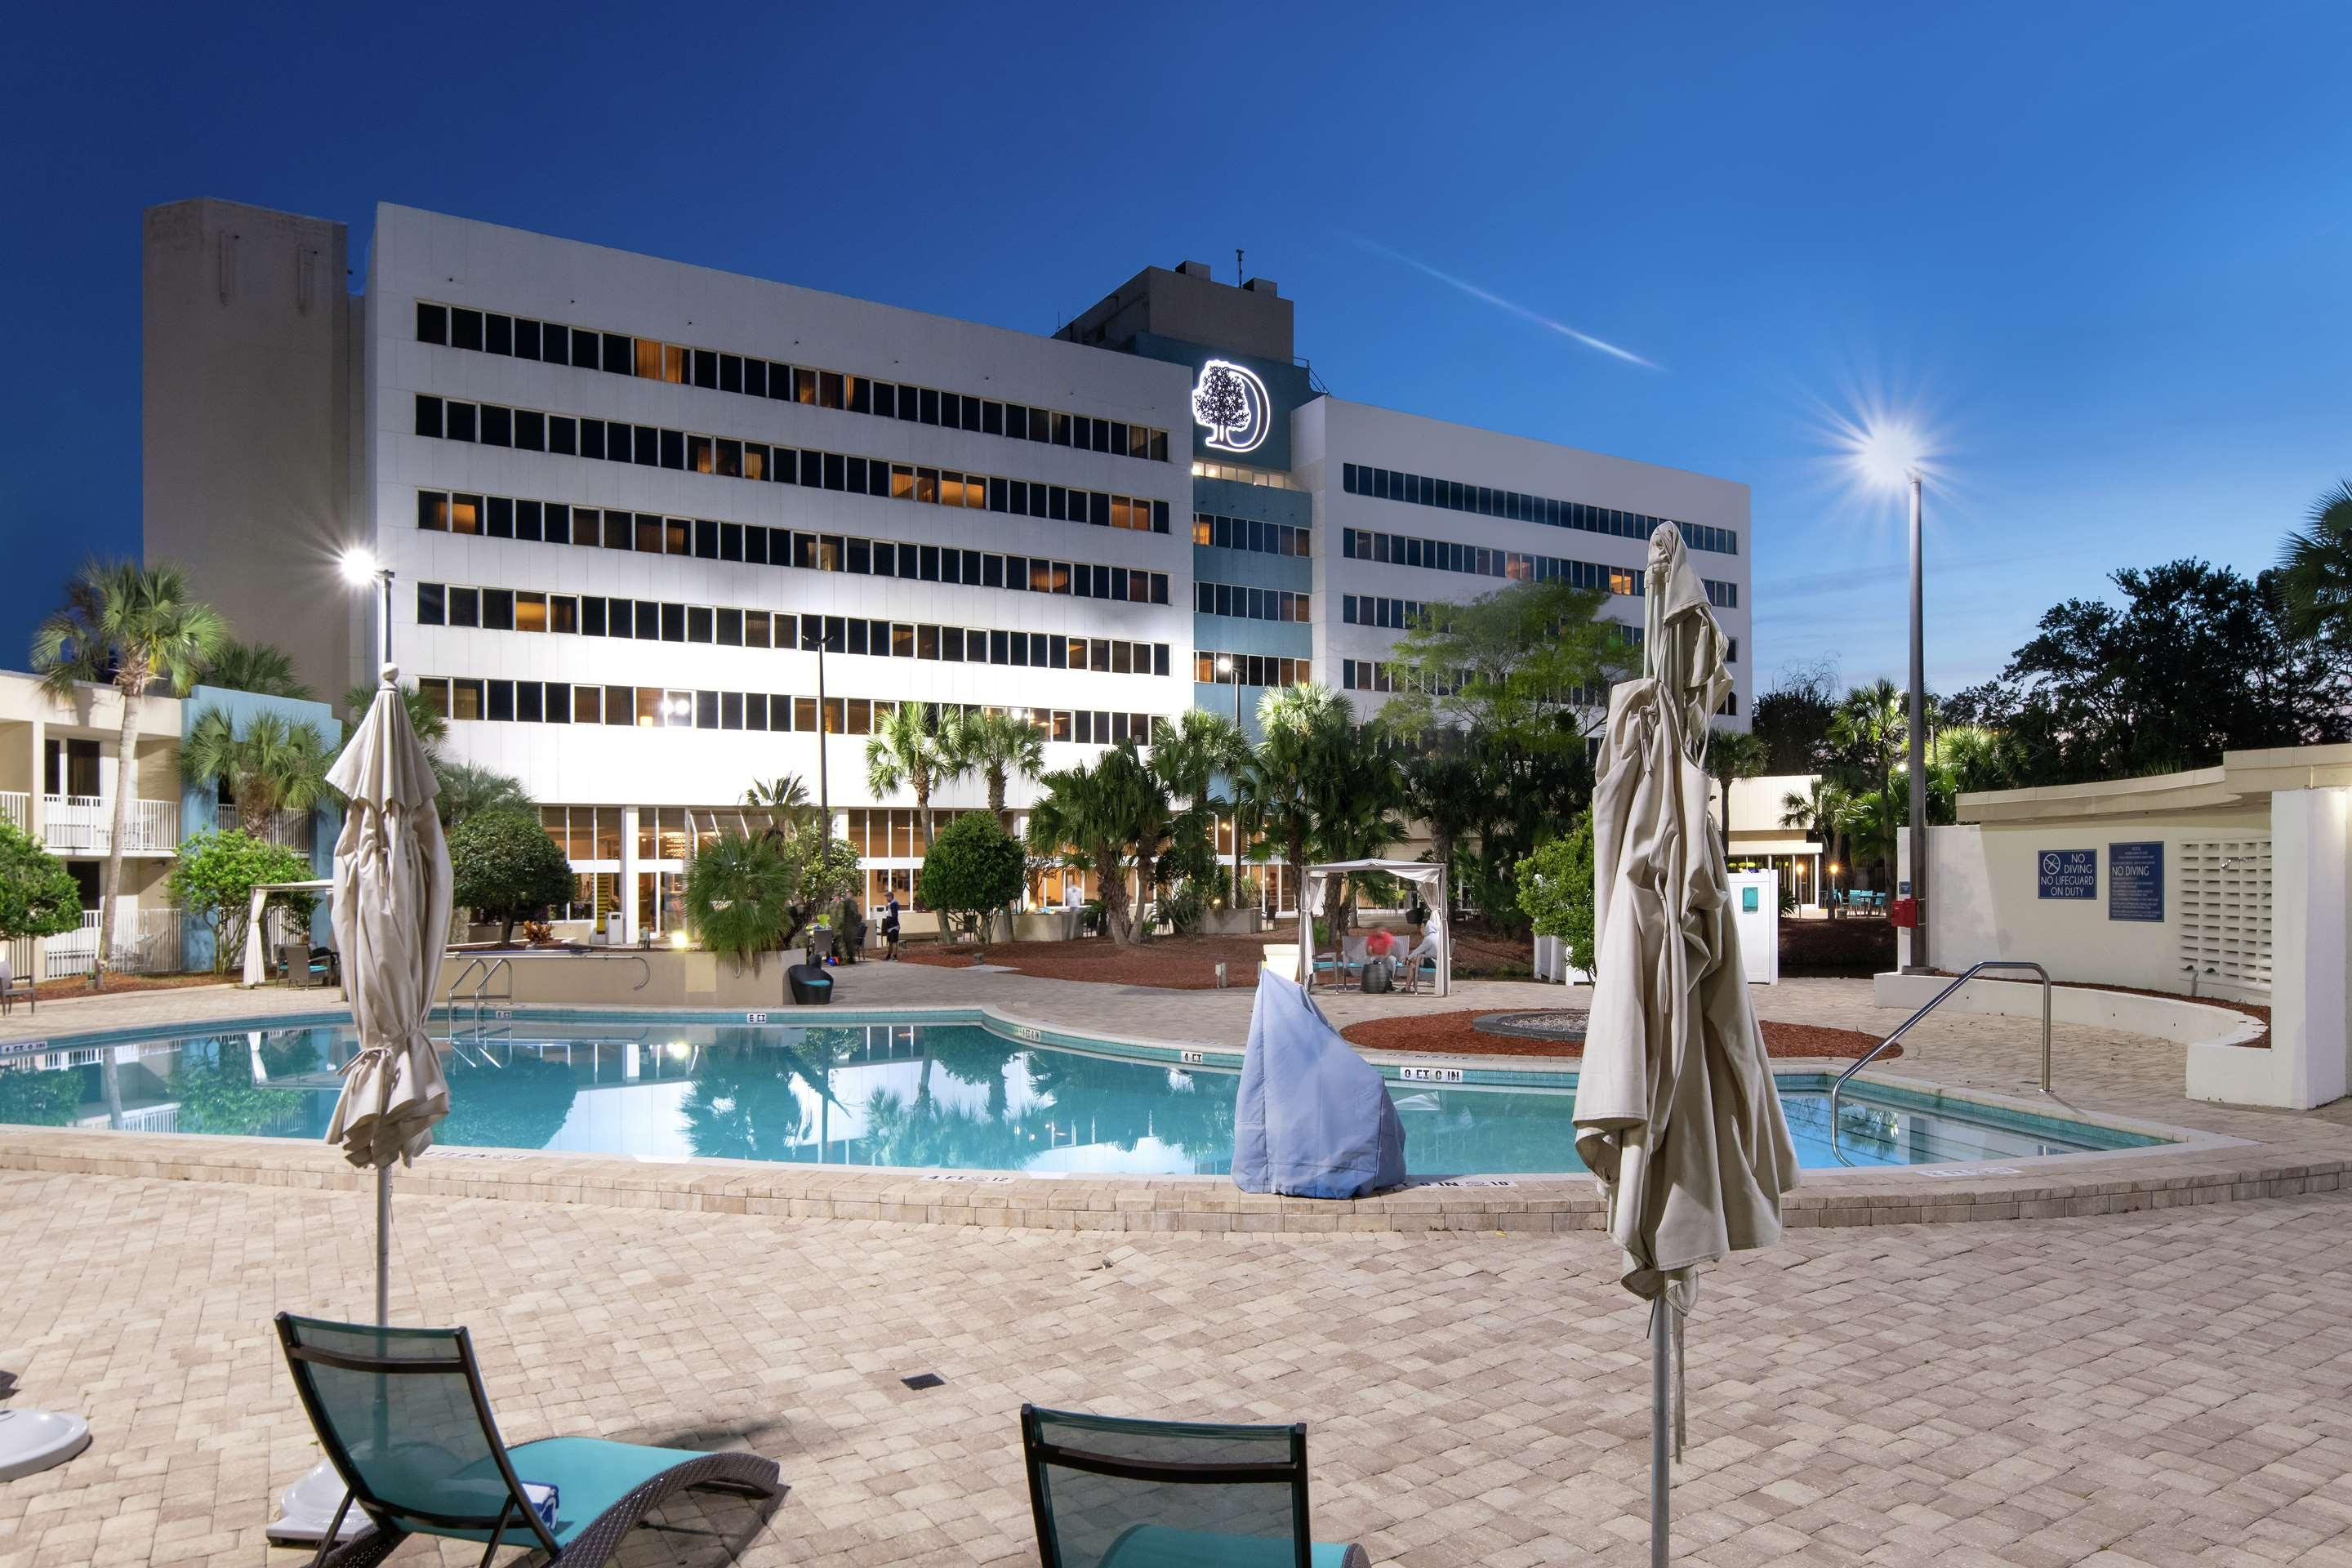 Doubletree By Hilton Hotel Jacksonville Airport 98